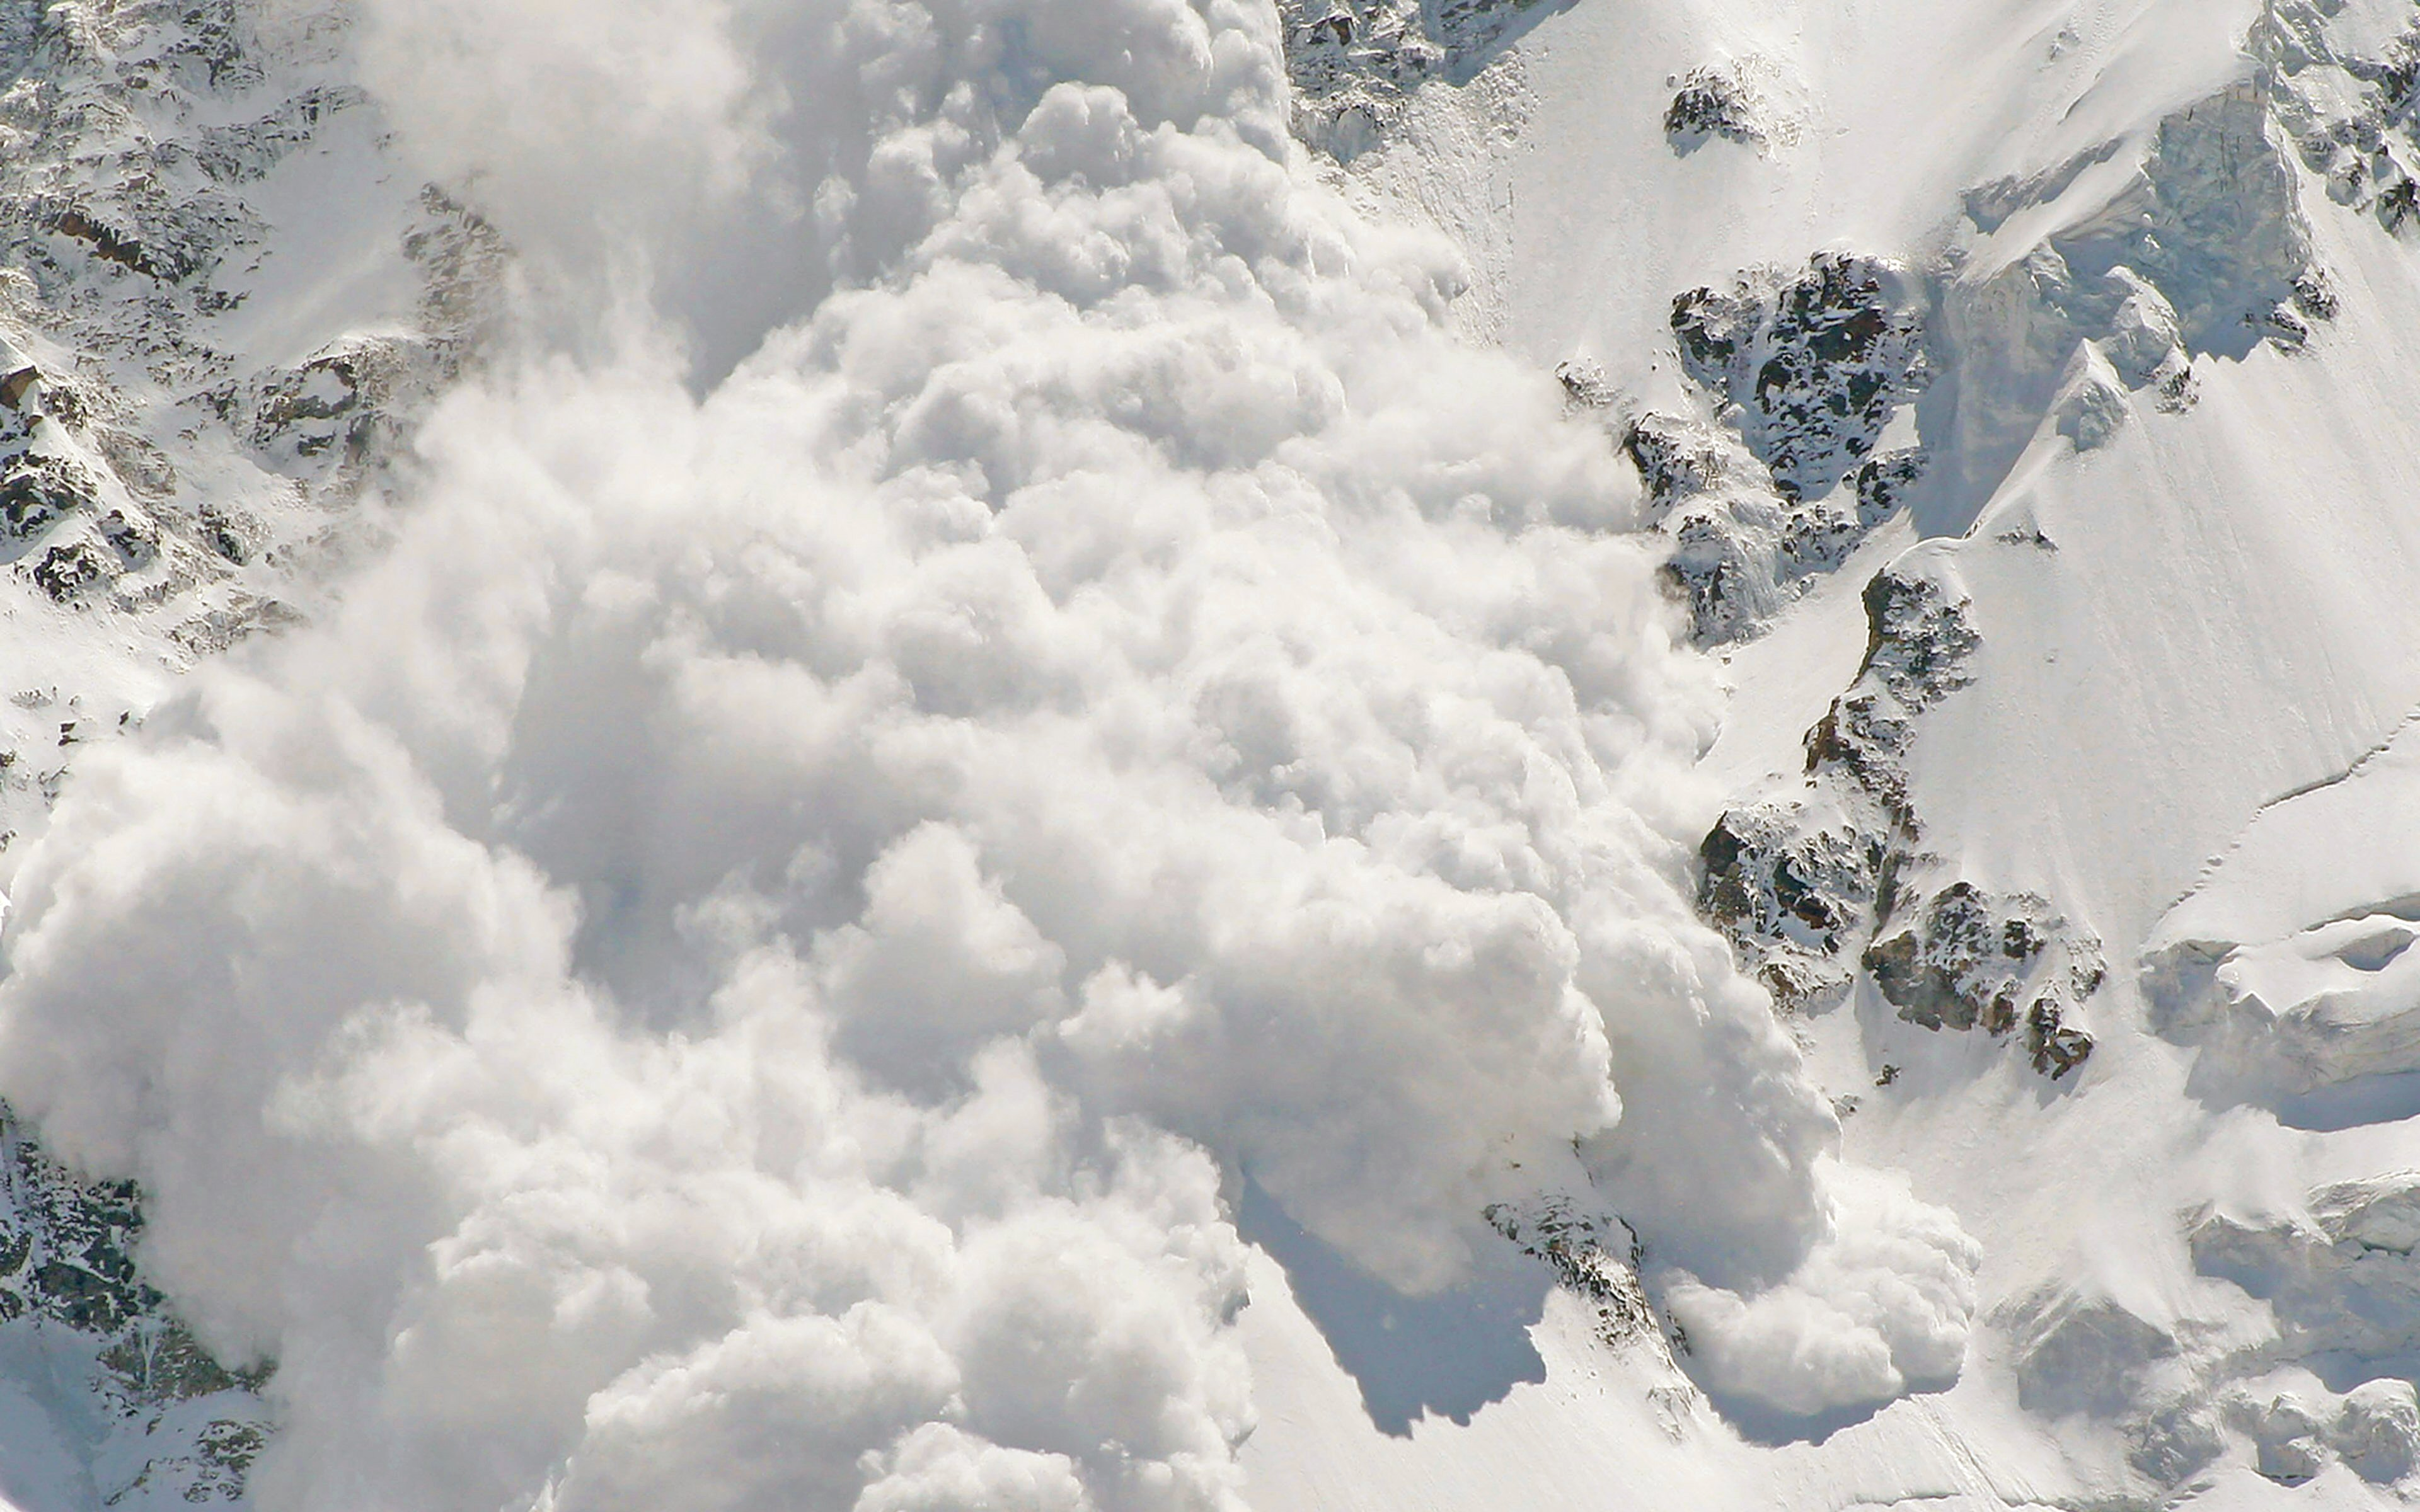 6 avalanche hd wallpapers | background images - wallpaper abyss